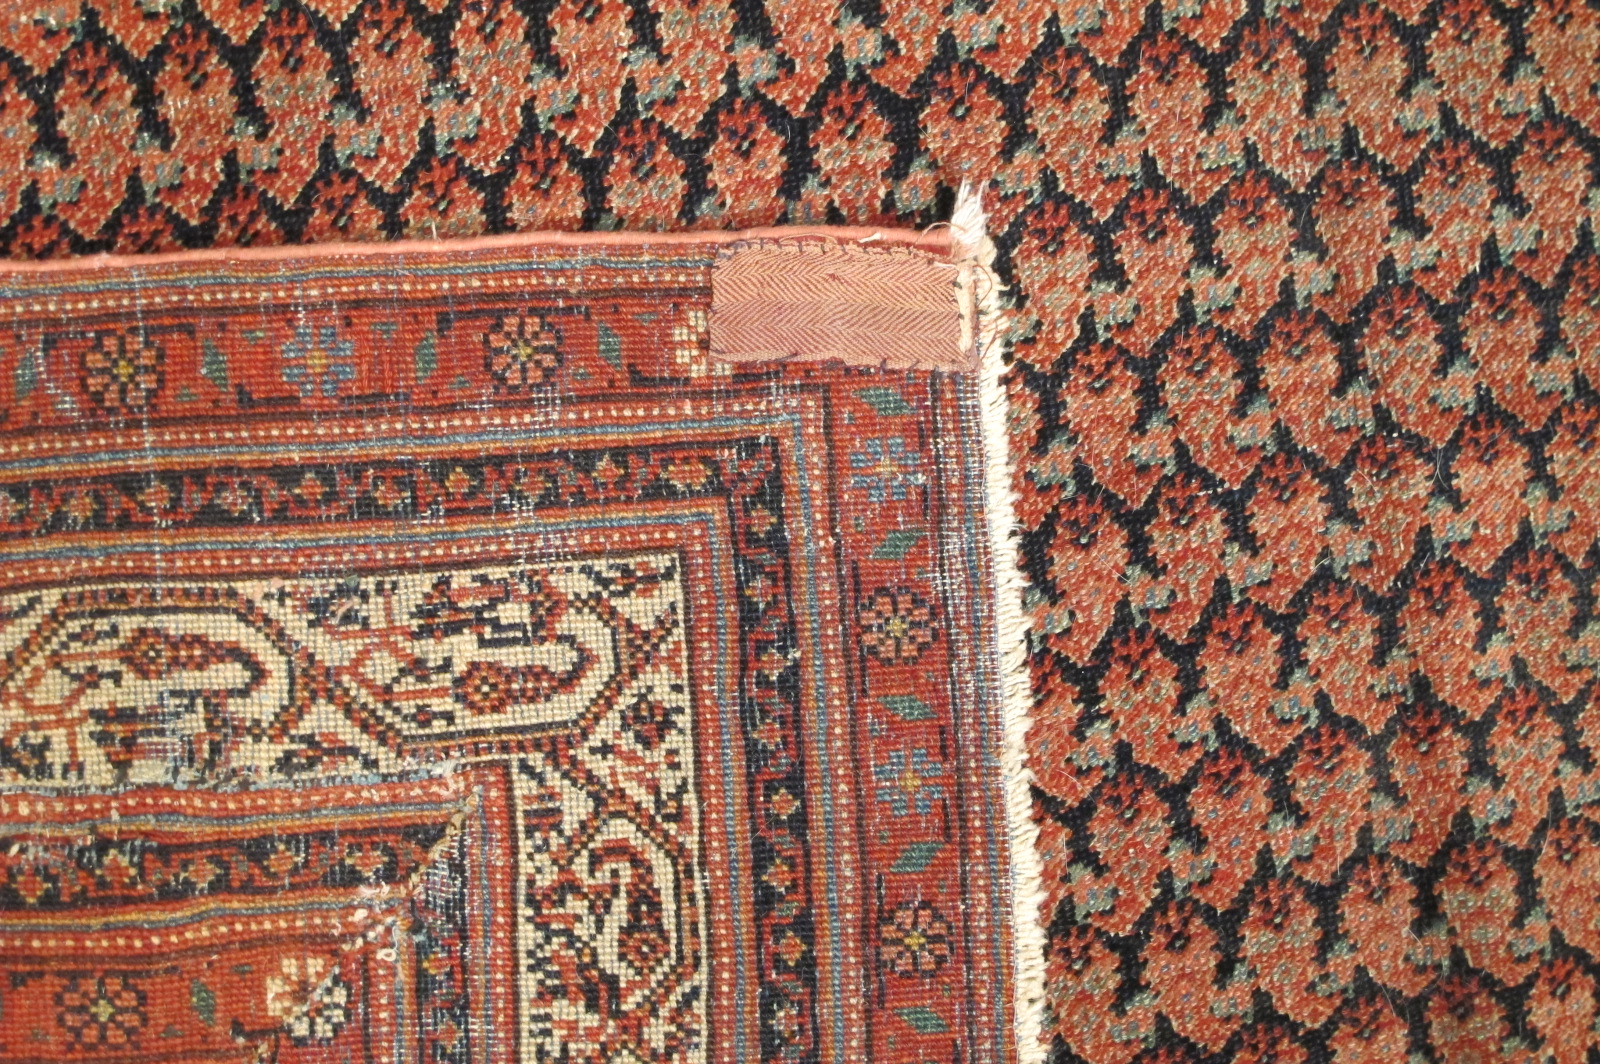 Antique Persian Seraband Gallery Rug